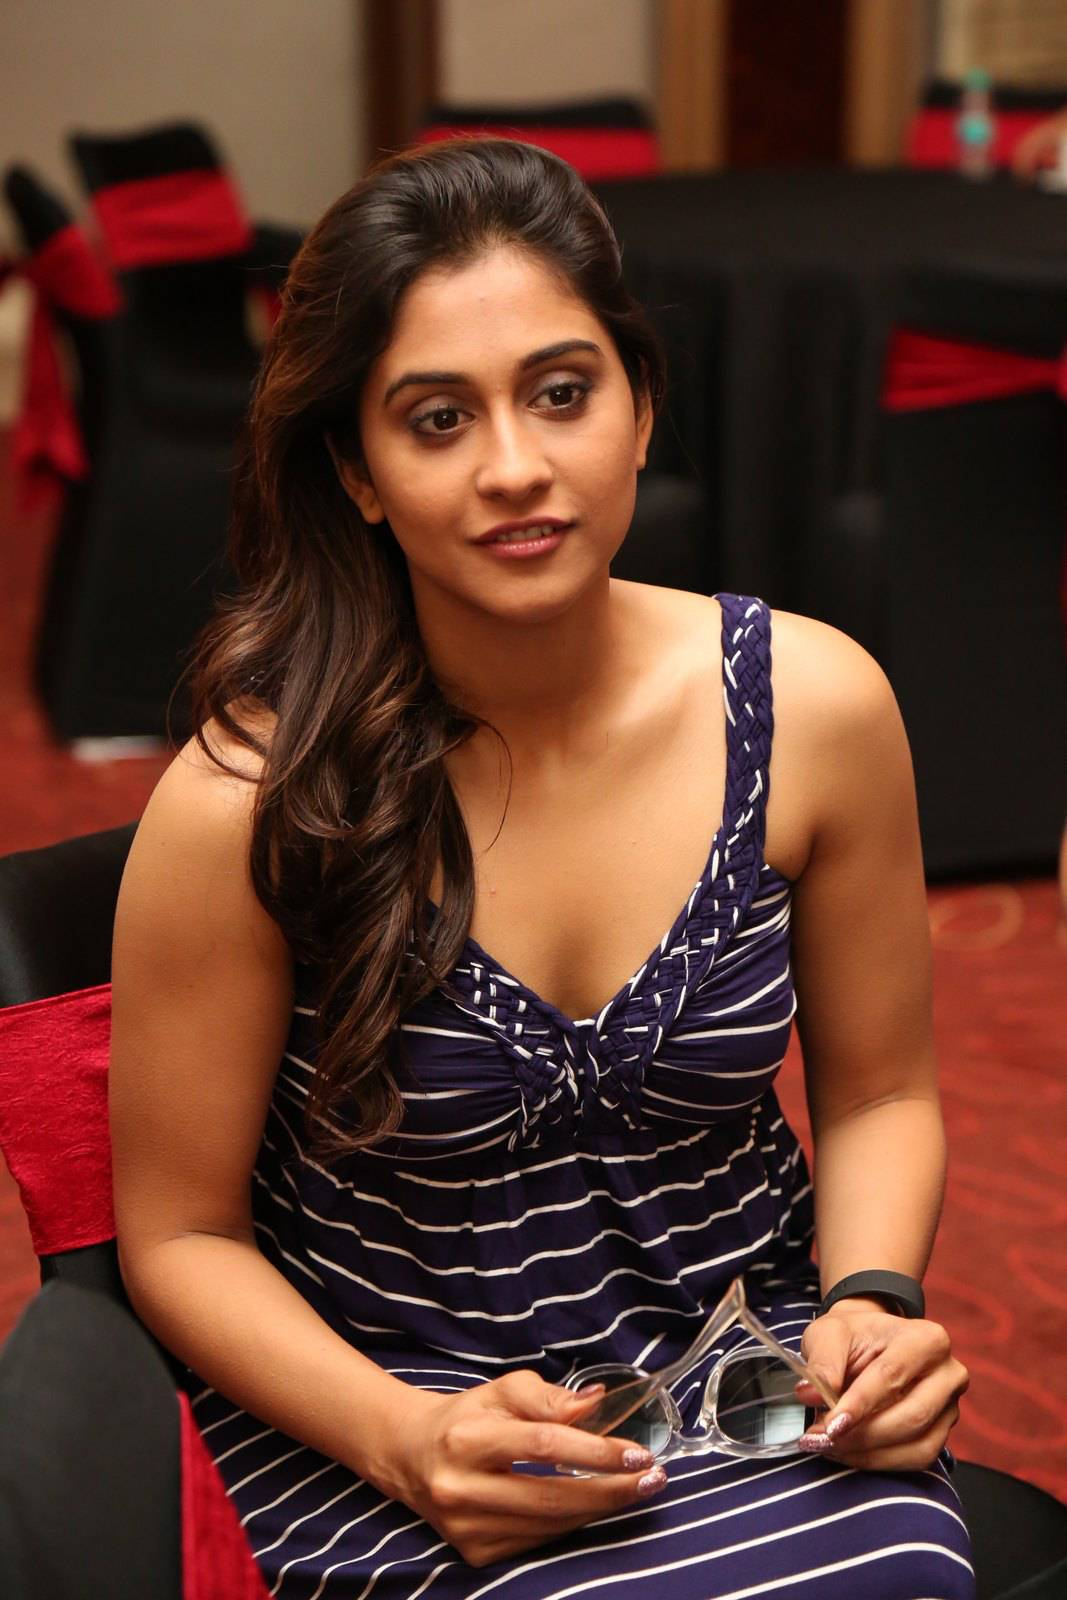 Bollywood Hot Actress Regina Cassandra Face Stills With Glass